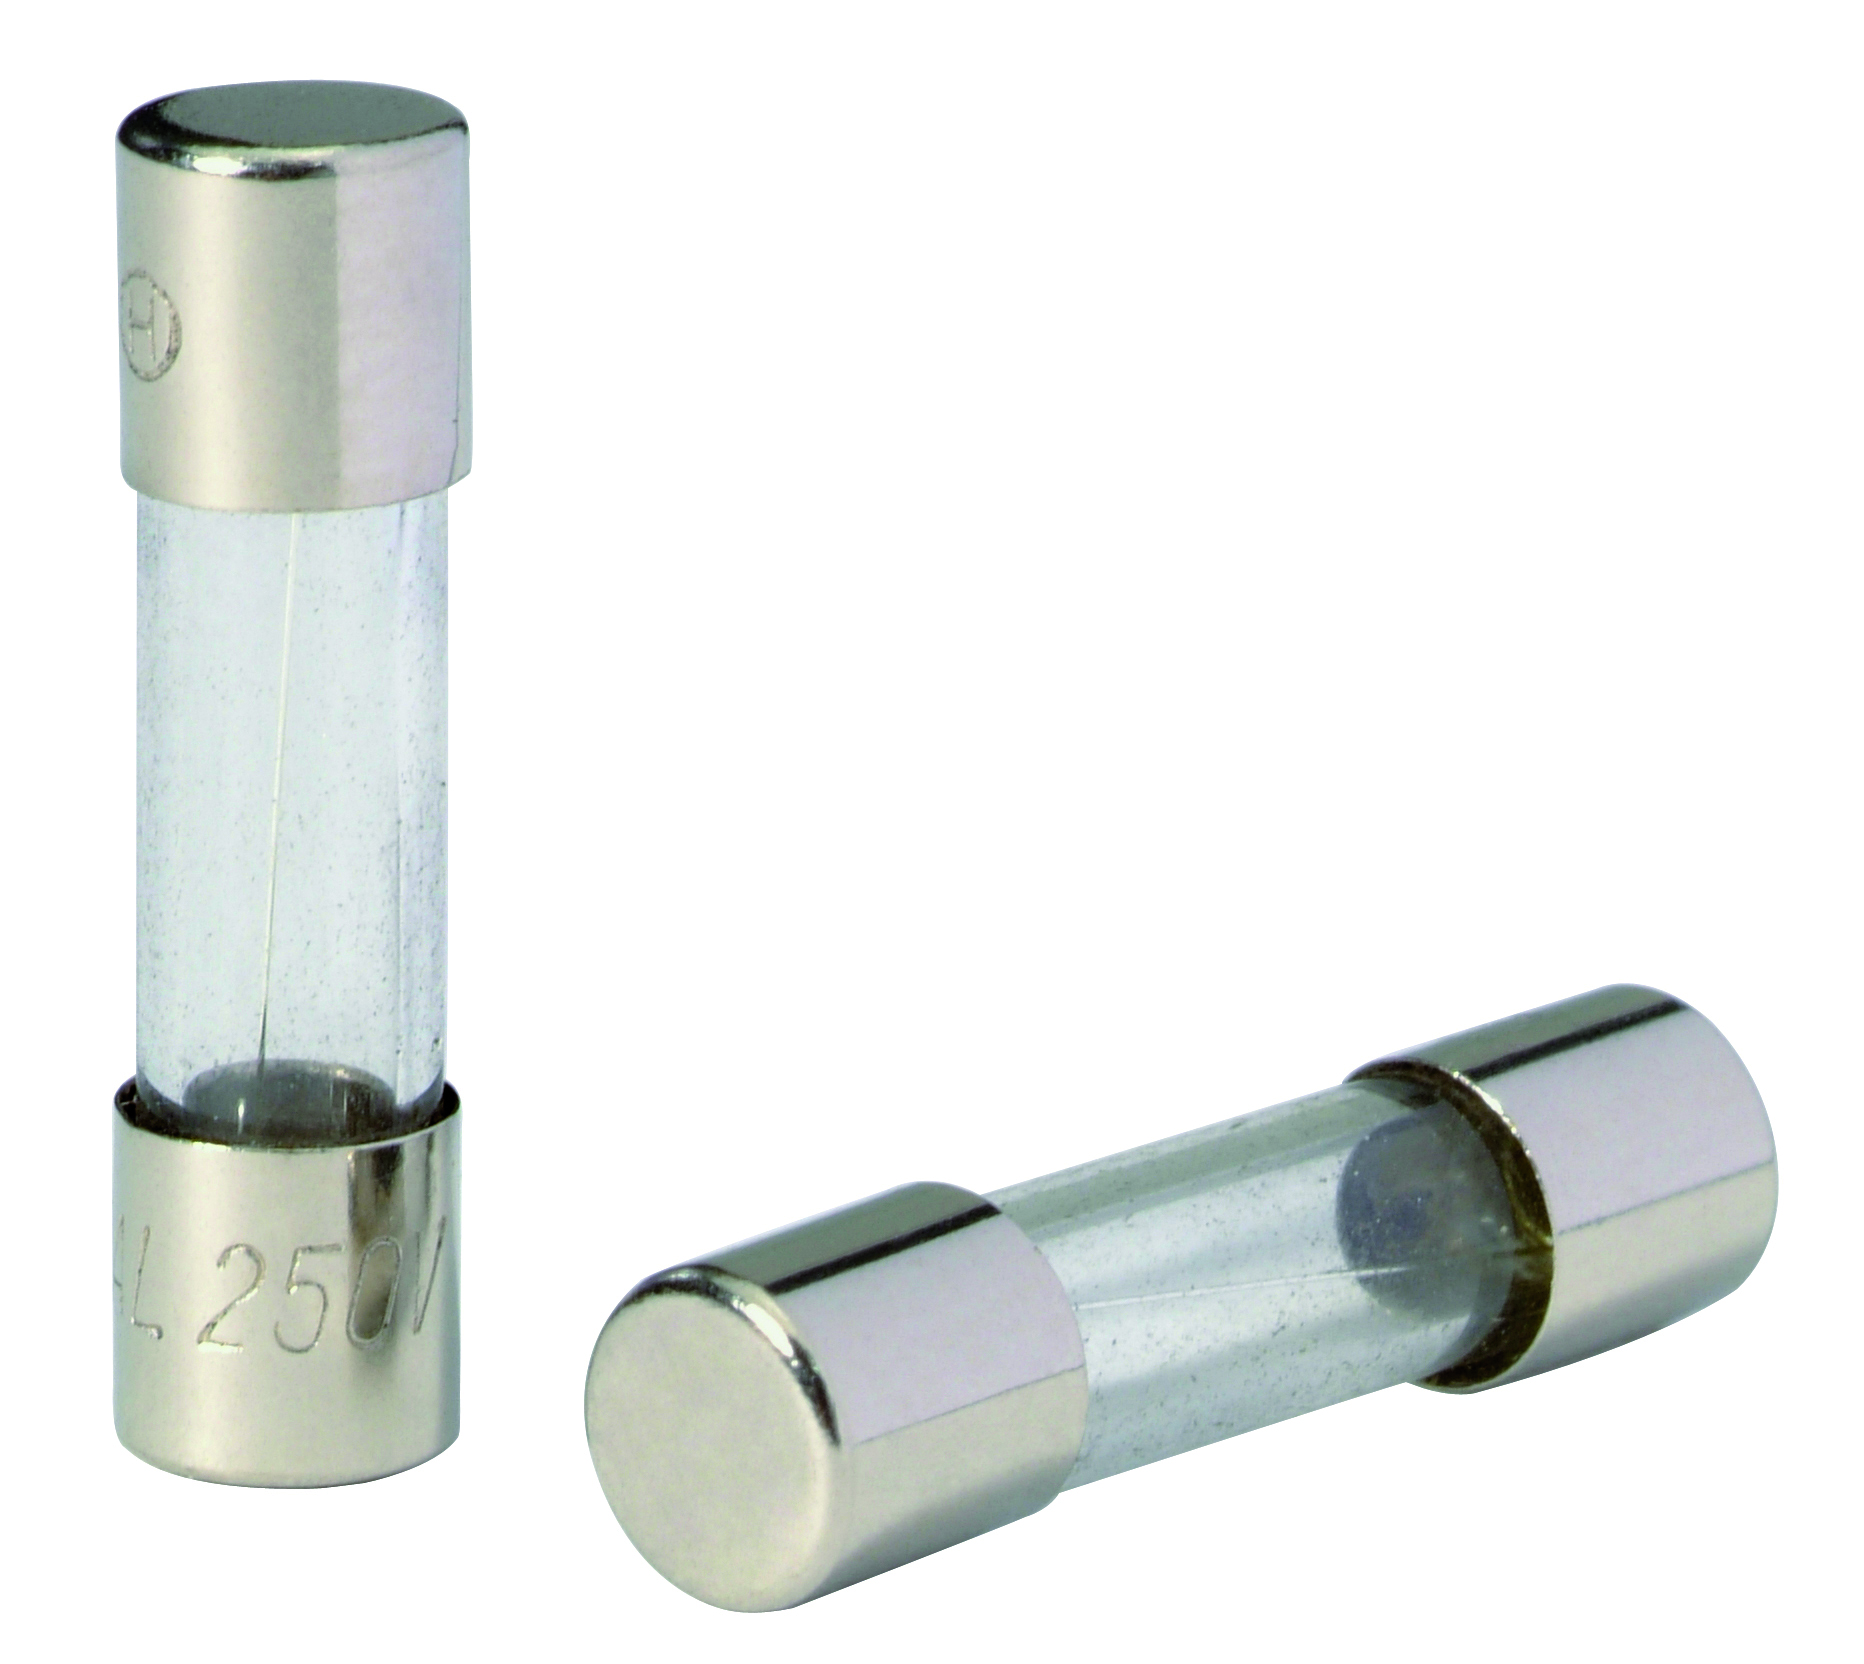 Glass fuse 1A 10 pieces